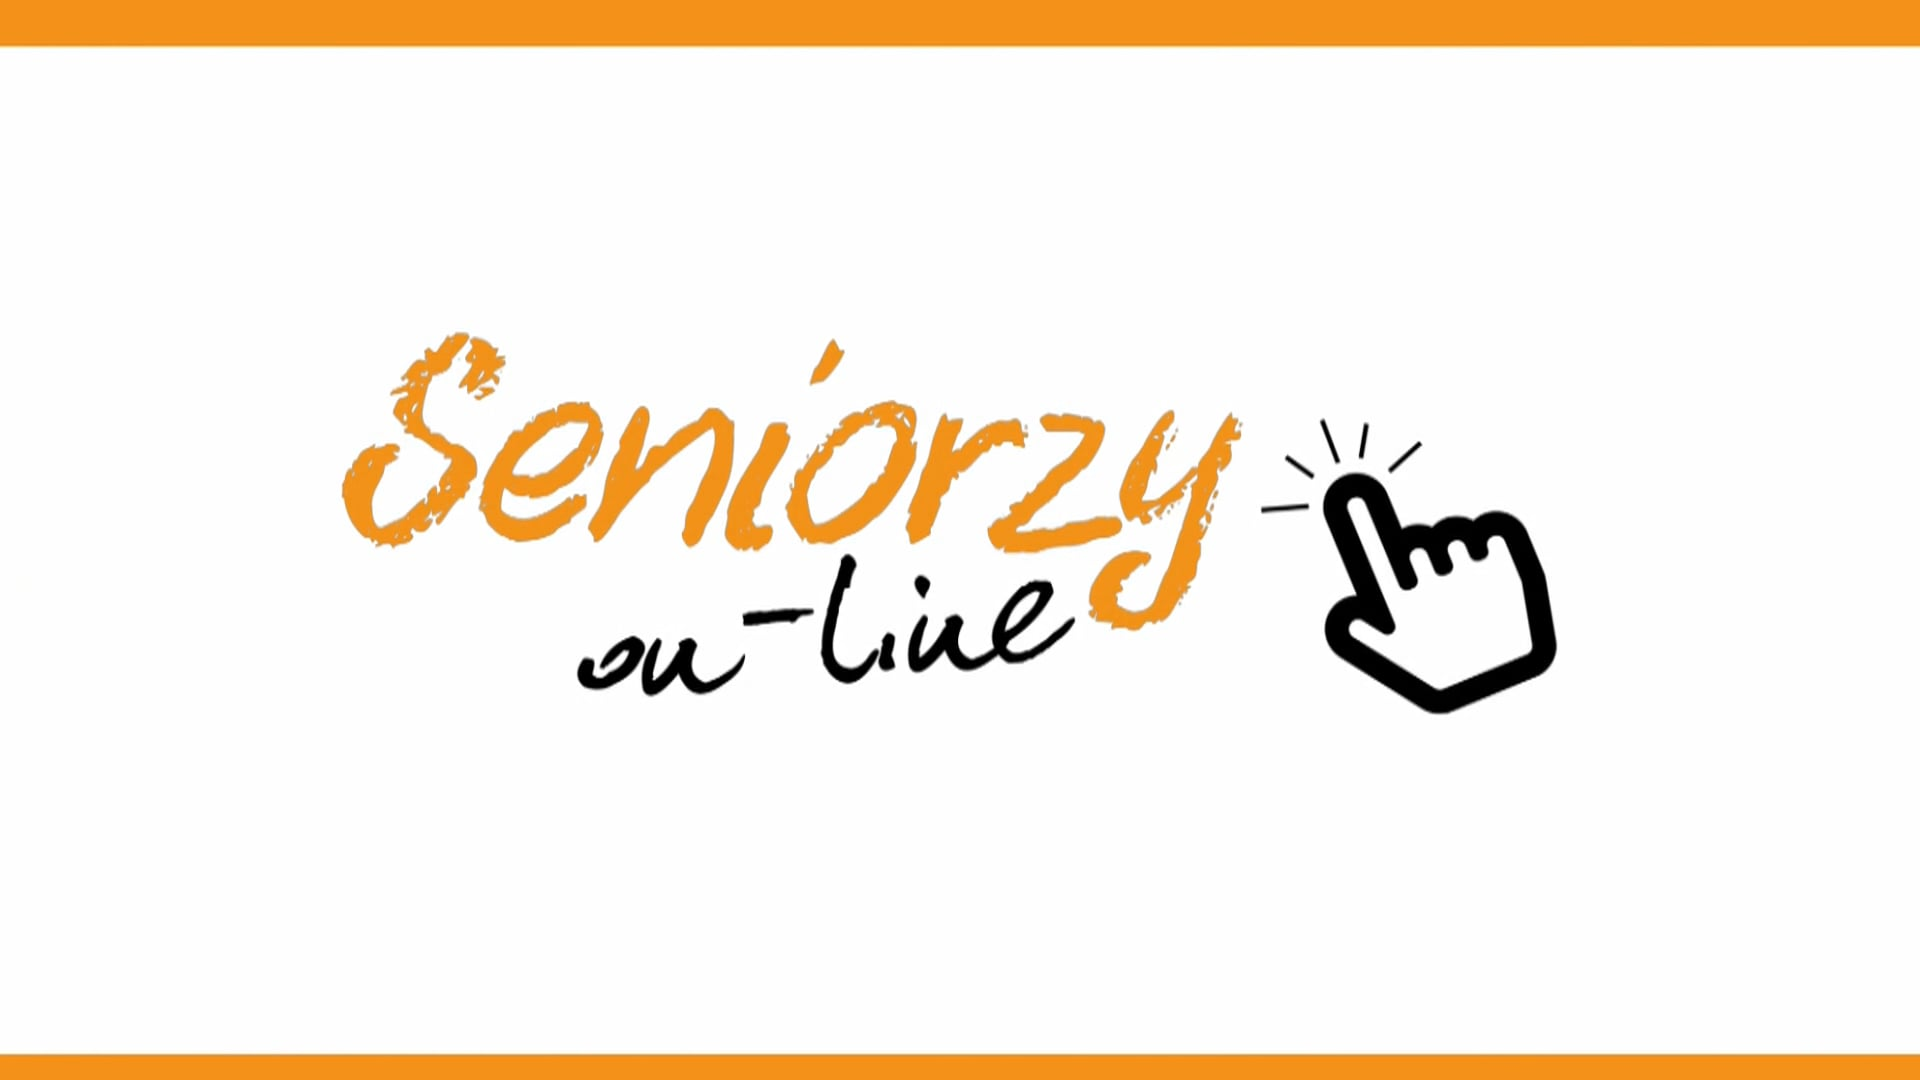 Seniorzy on-line – odc. 1